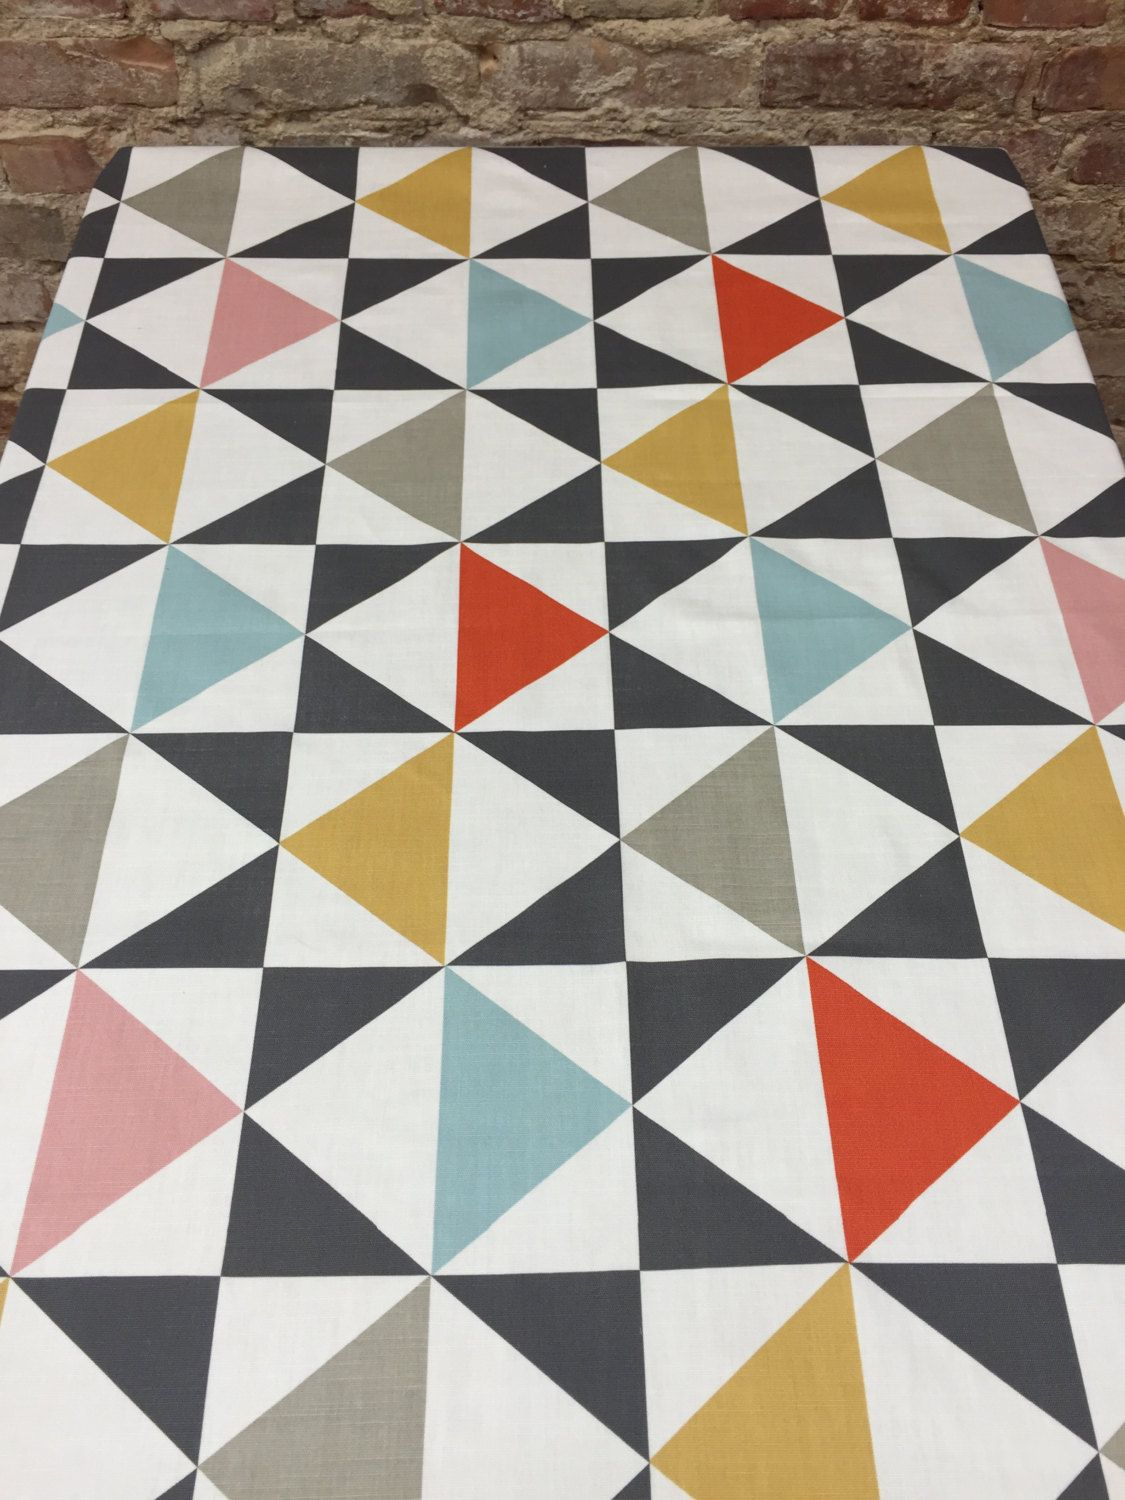 Tablecloth With Gray Pink Yellow Orange Blue And White Triangles Geometric Triangle Table Runner By Sikridream On Etsy